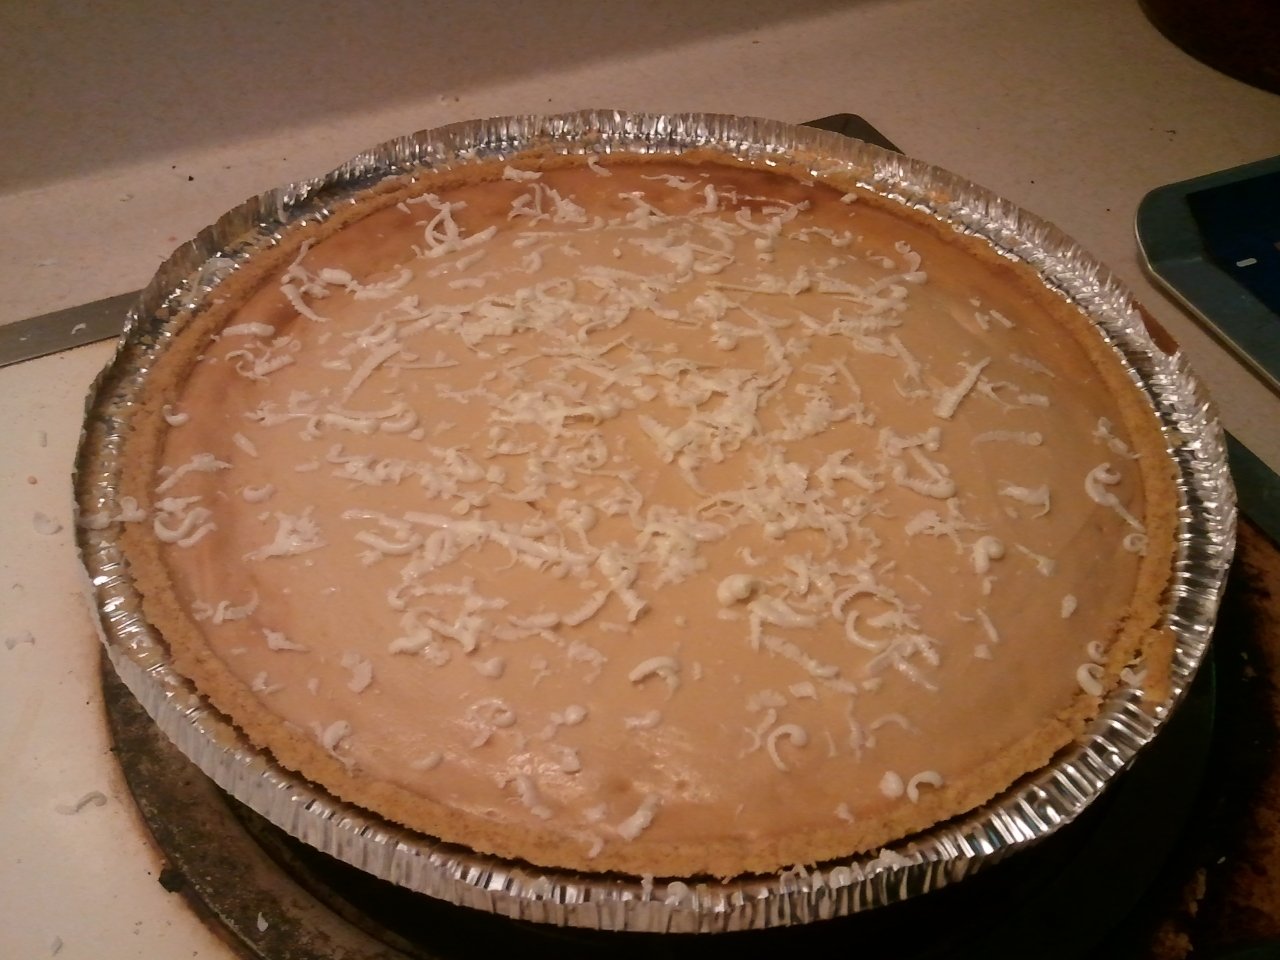 http://foodsofourlives.com/2012/11/irish-cream-caramel-cheesecake/